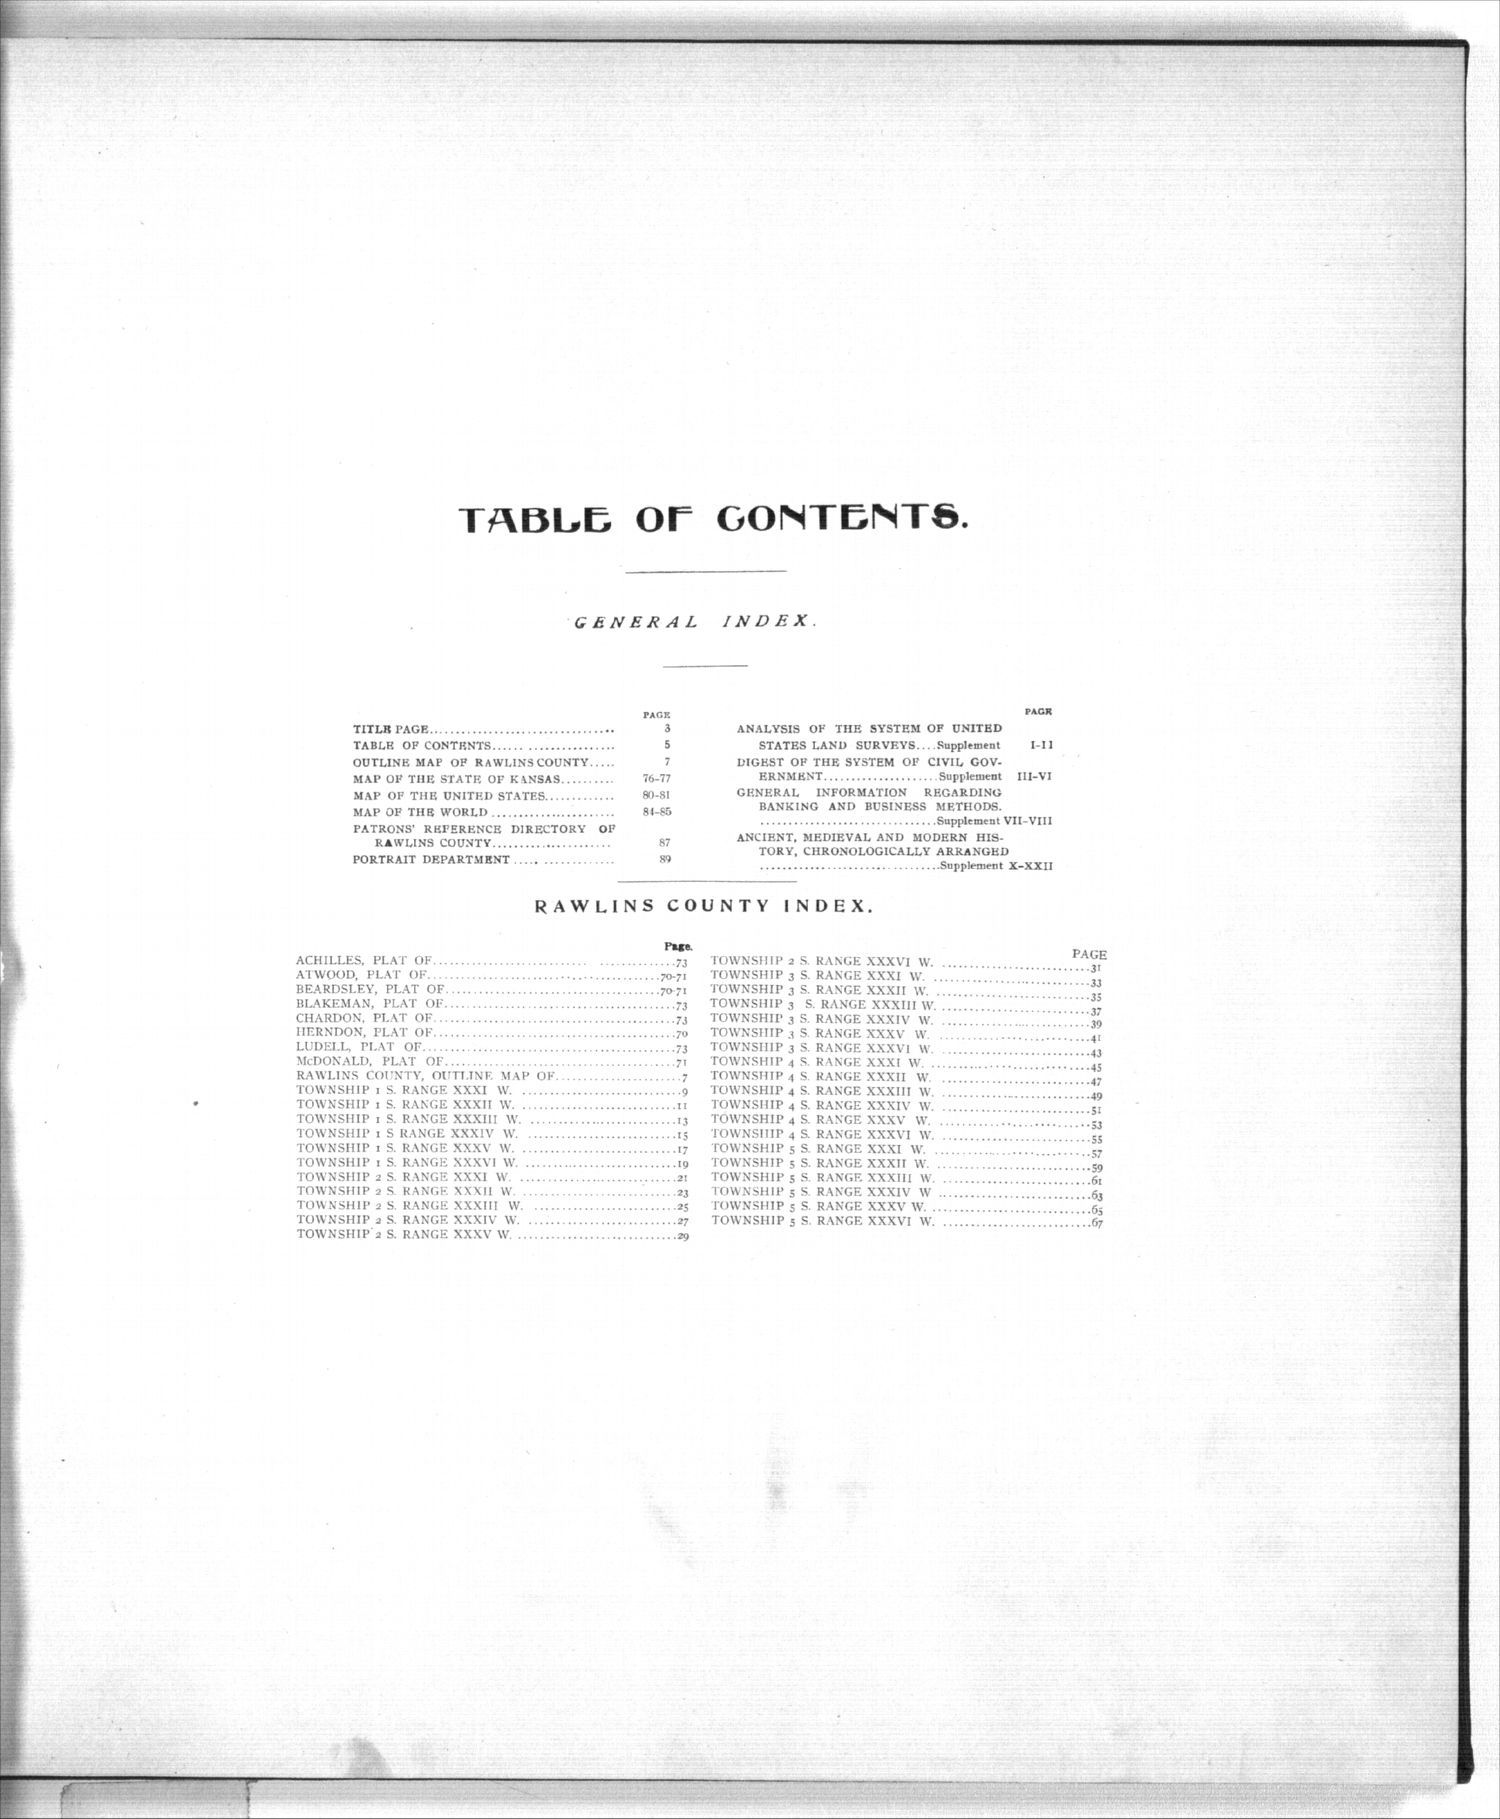 Standard atlas of Rawlins County, Kansas - Table of Contents